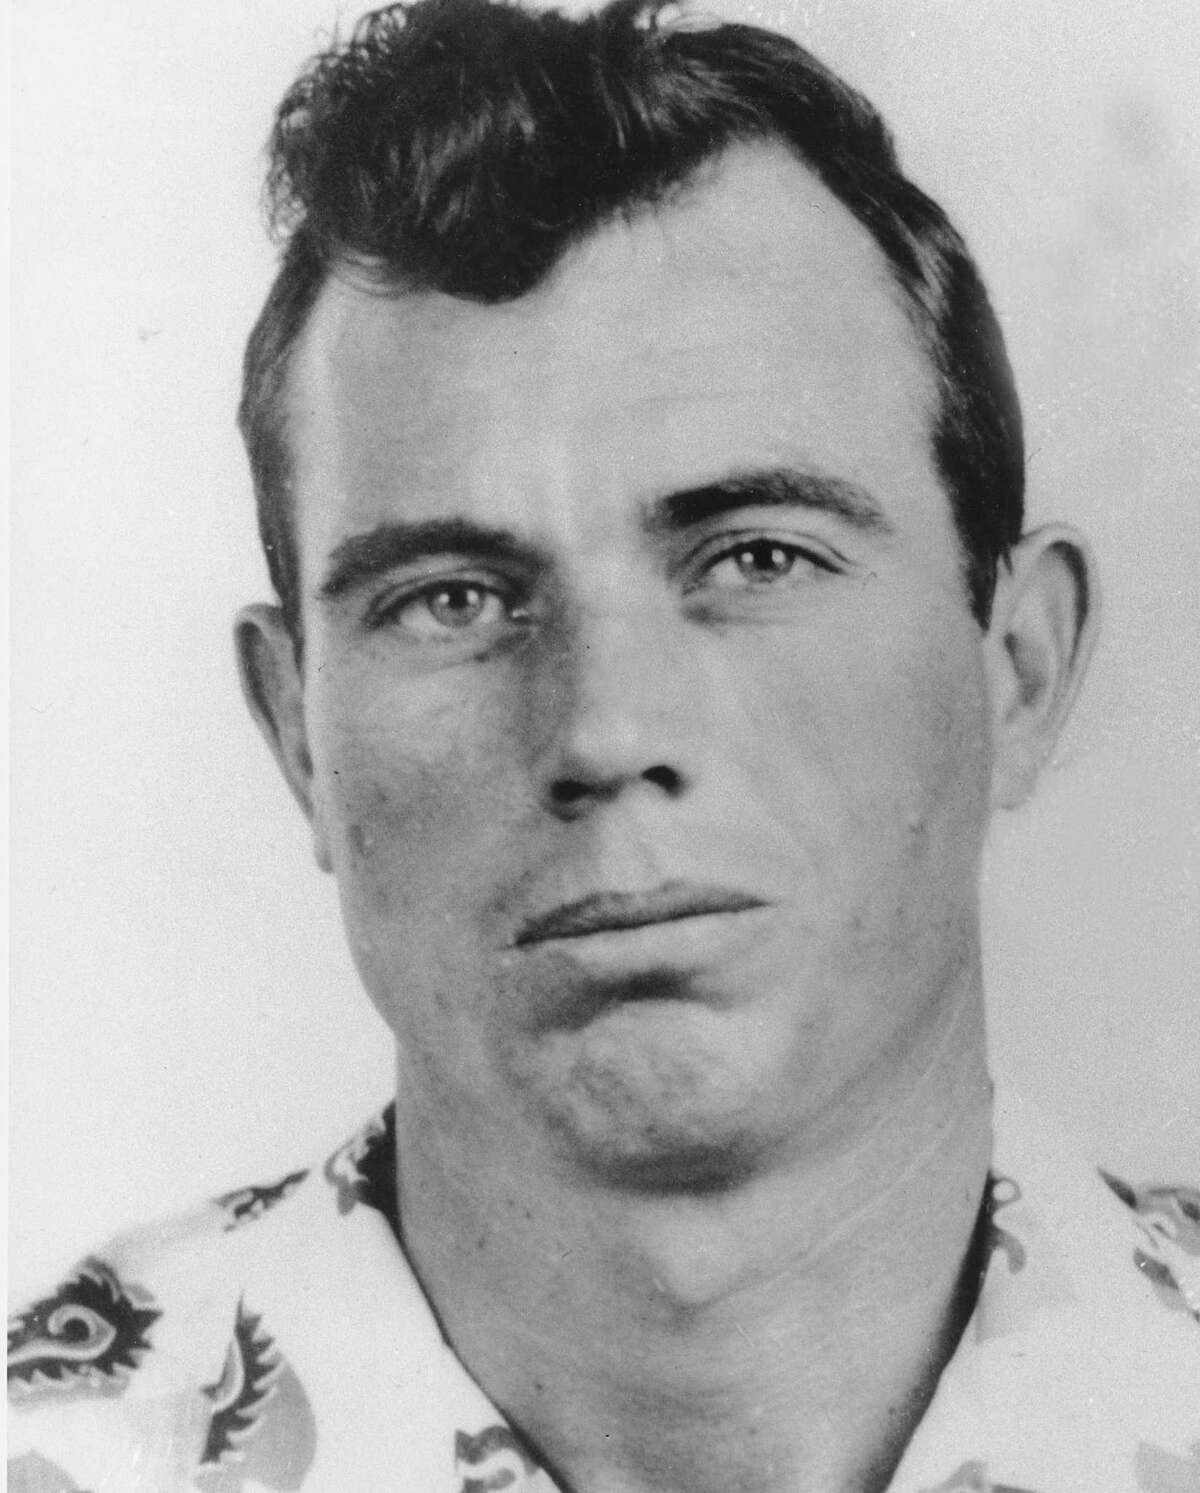 Dallas officer J.D. Tippit was shot by Lee Harvey Oswald after the attack on John F. Kennedy in 1963.